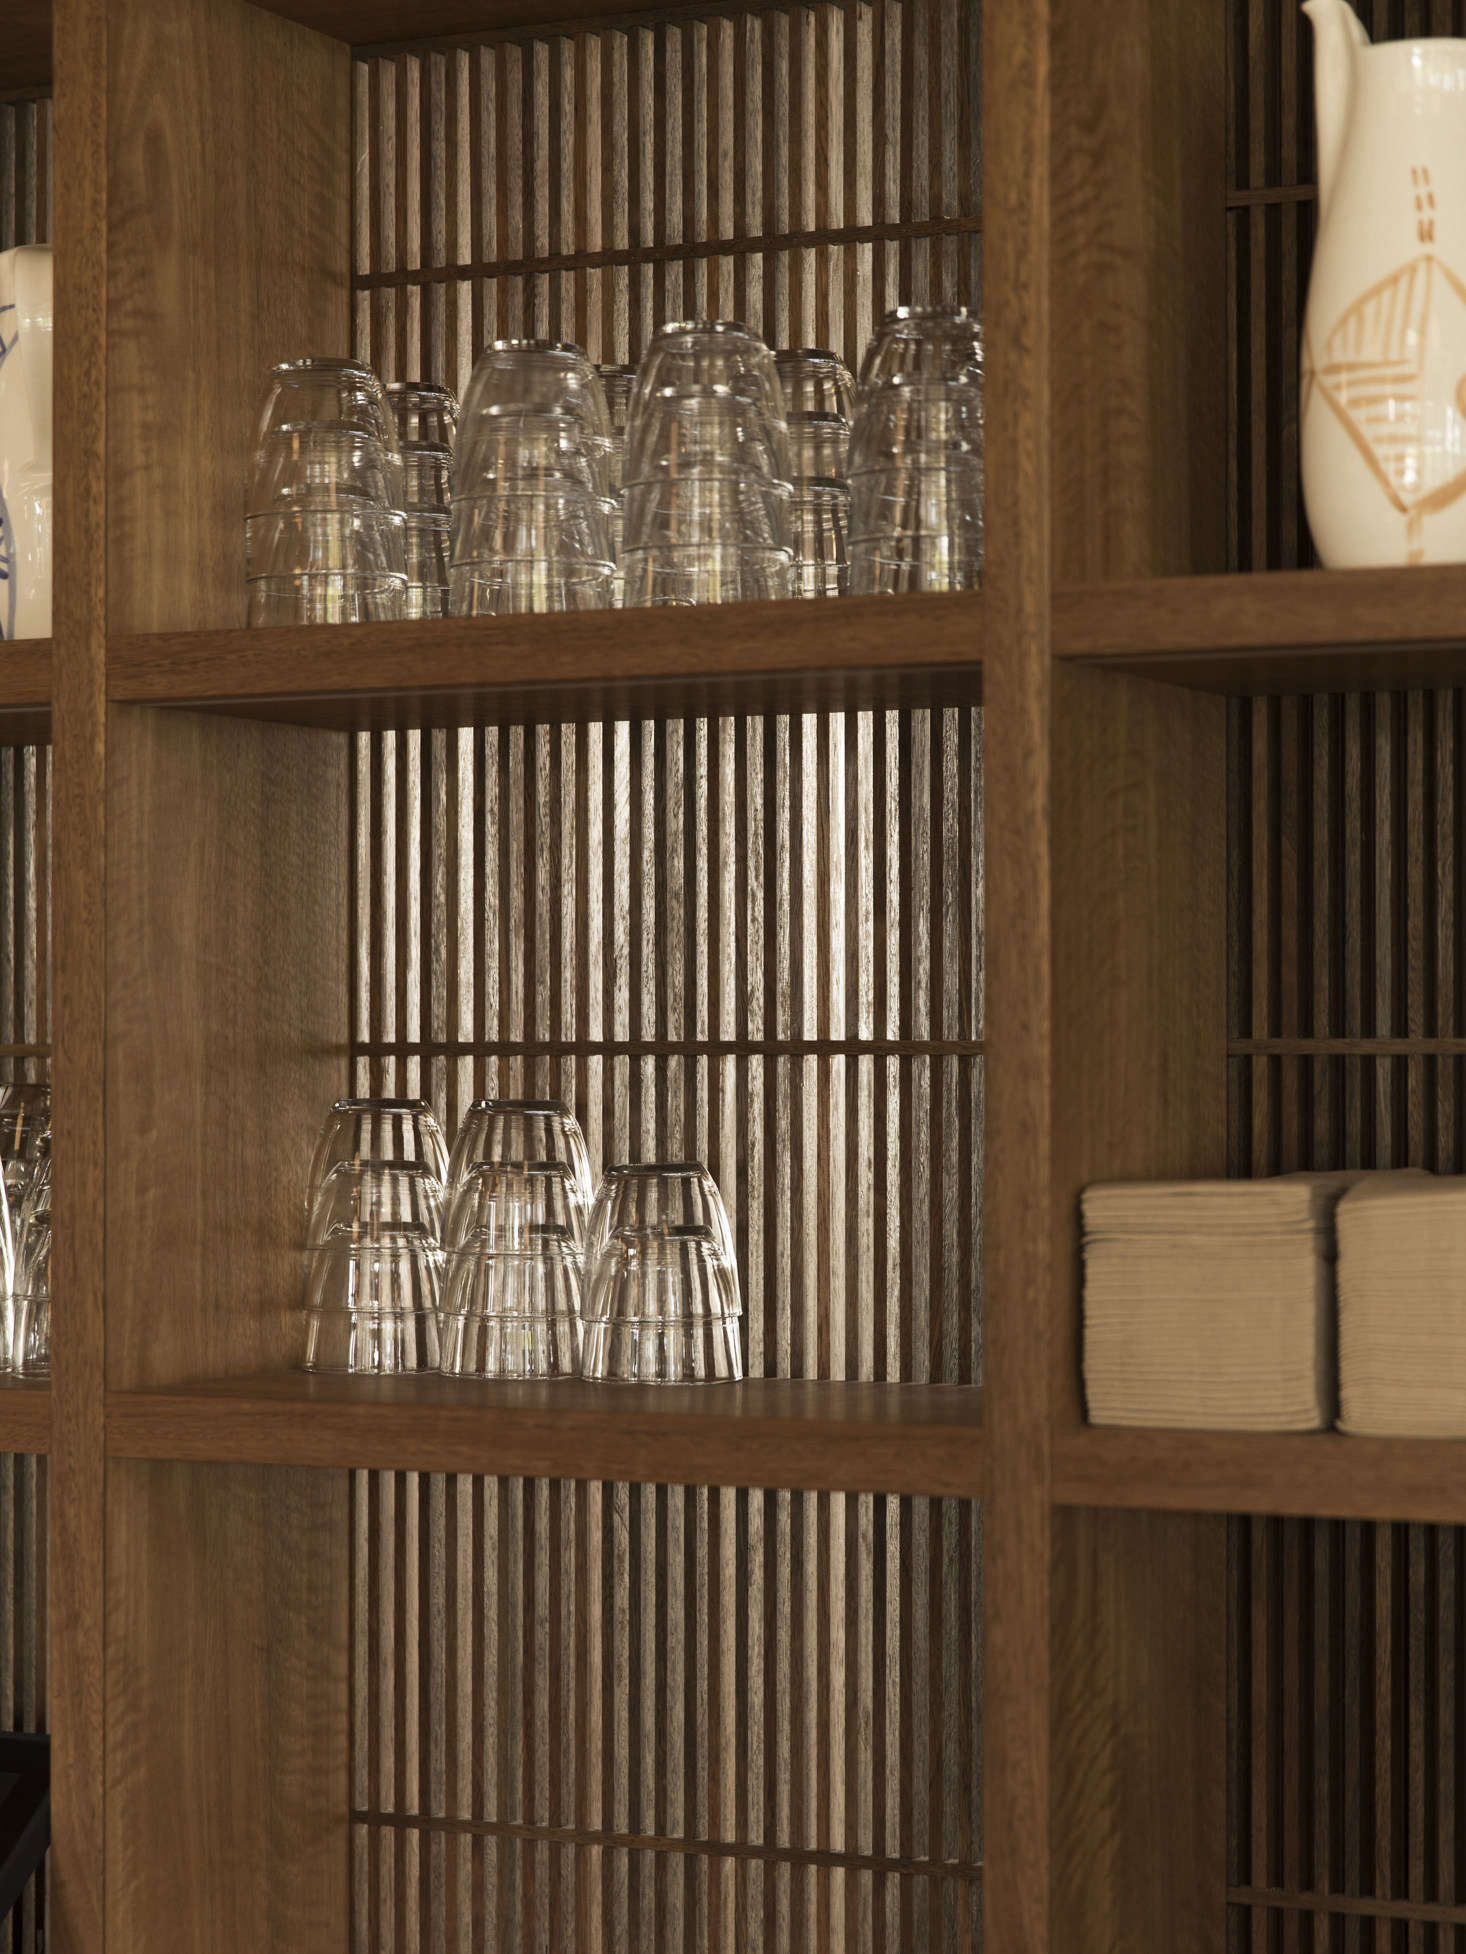 The slatted back of the custom cabinets lets in light and mimics the building's facade.